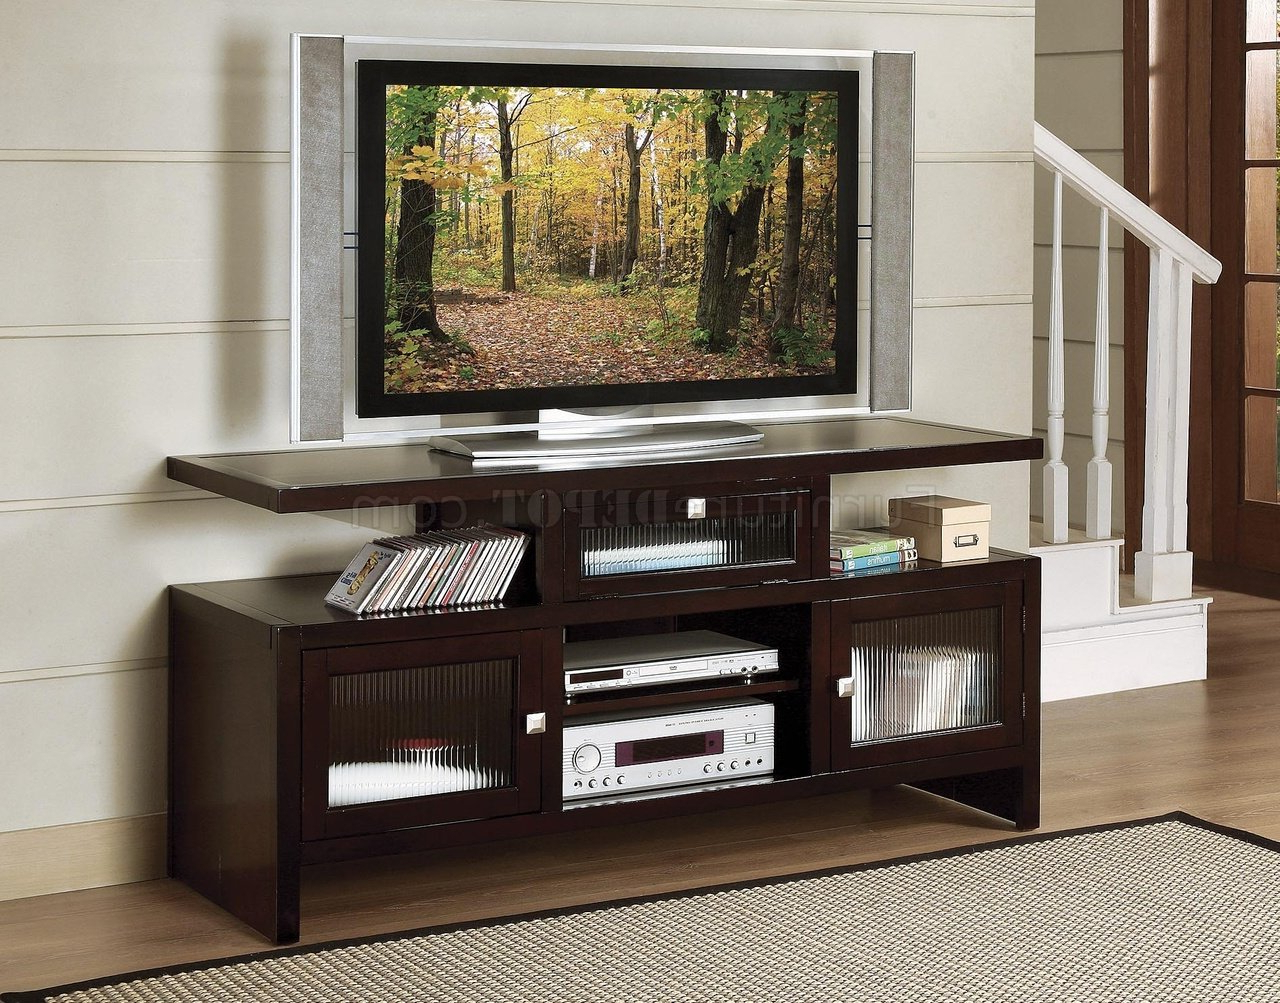 Deep Rich Merlot Finish Traditional Tv Stand W/reeded Glass With Well Liked Traditional Tv Cabinets (View 11 of 20)